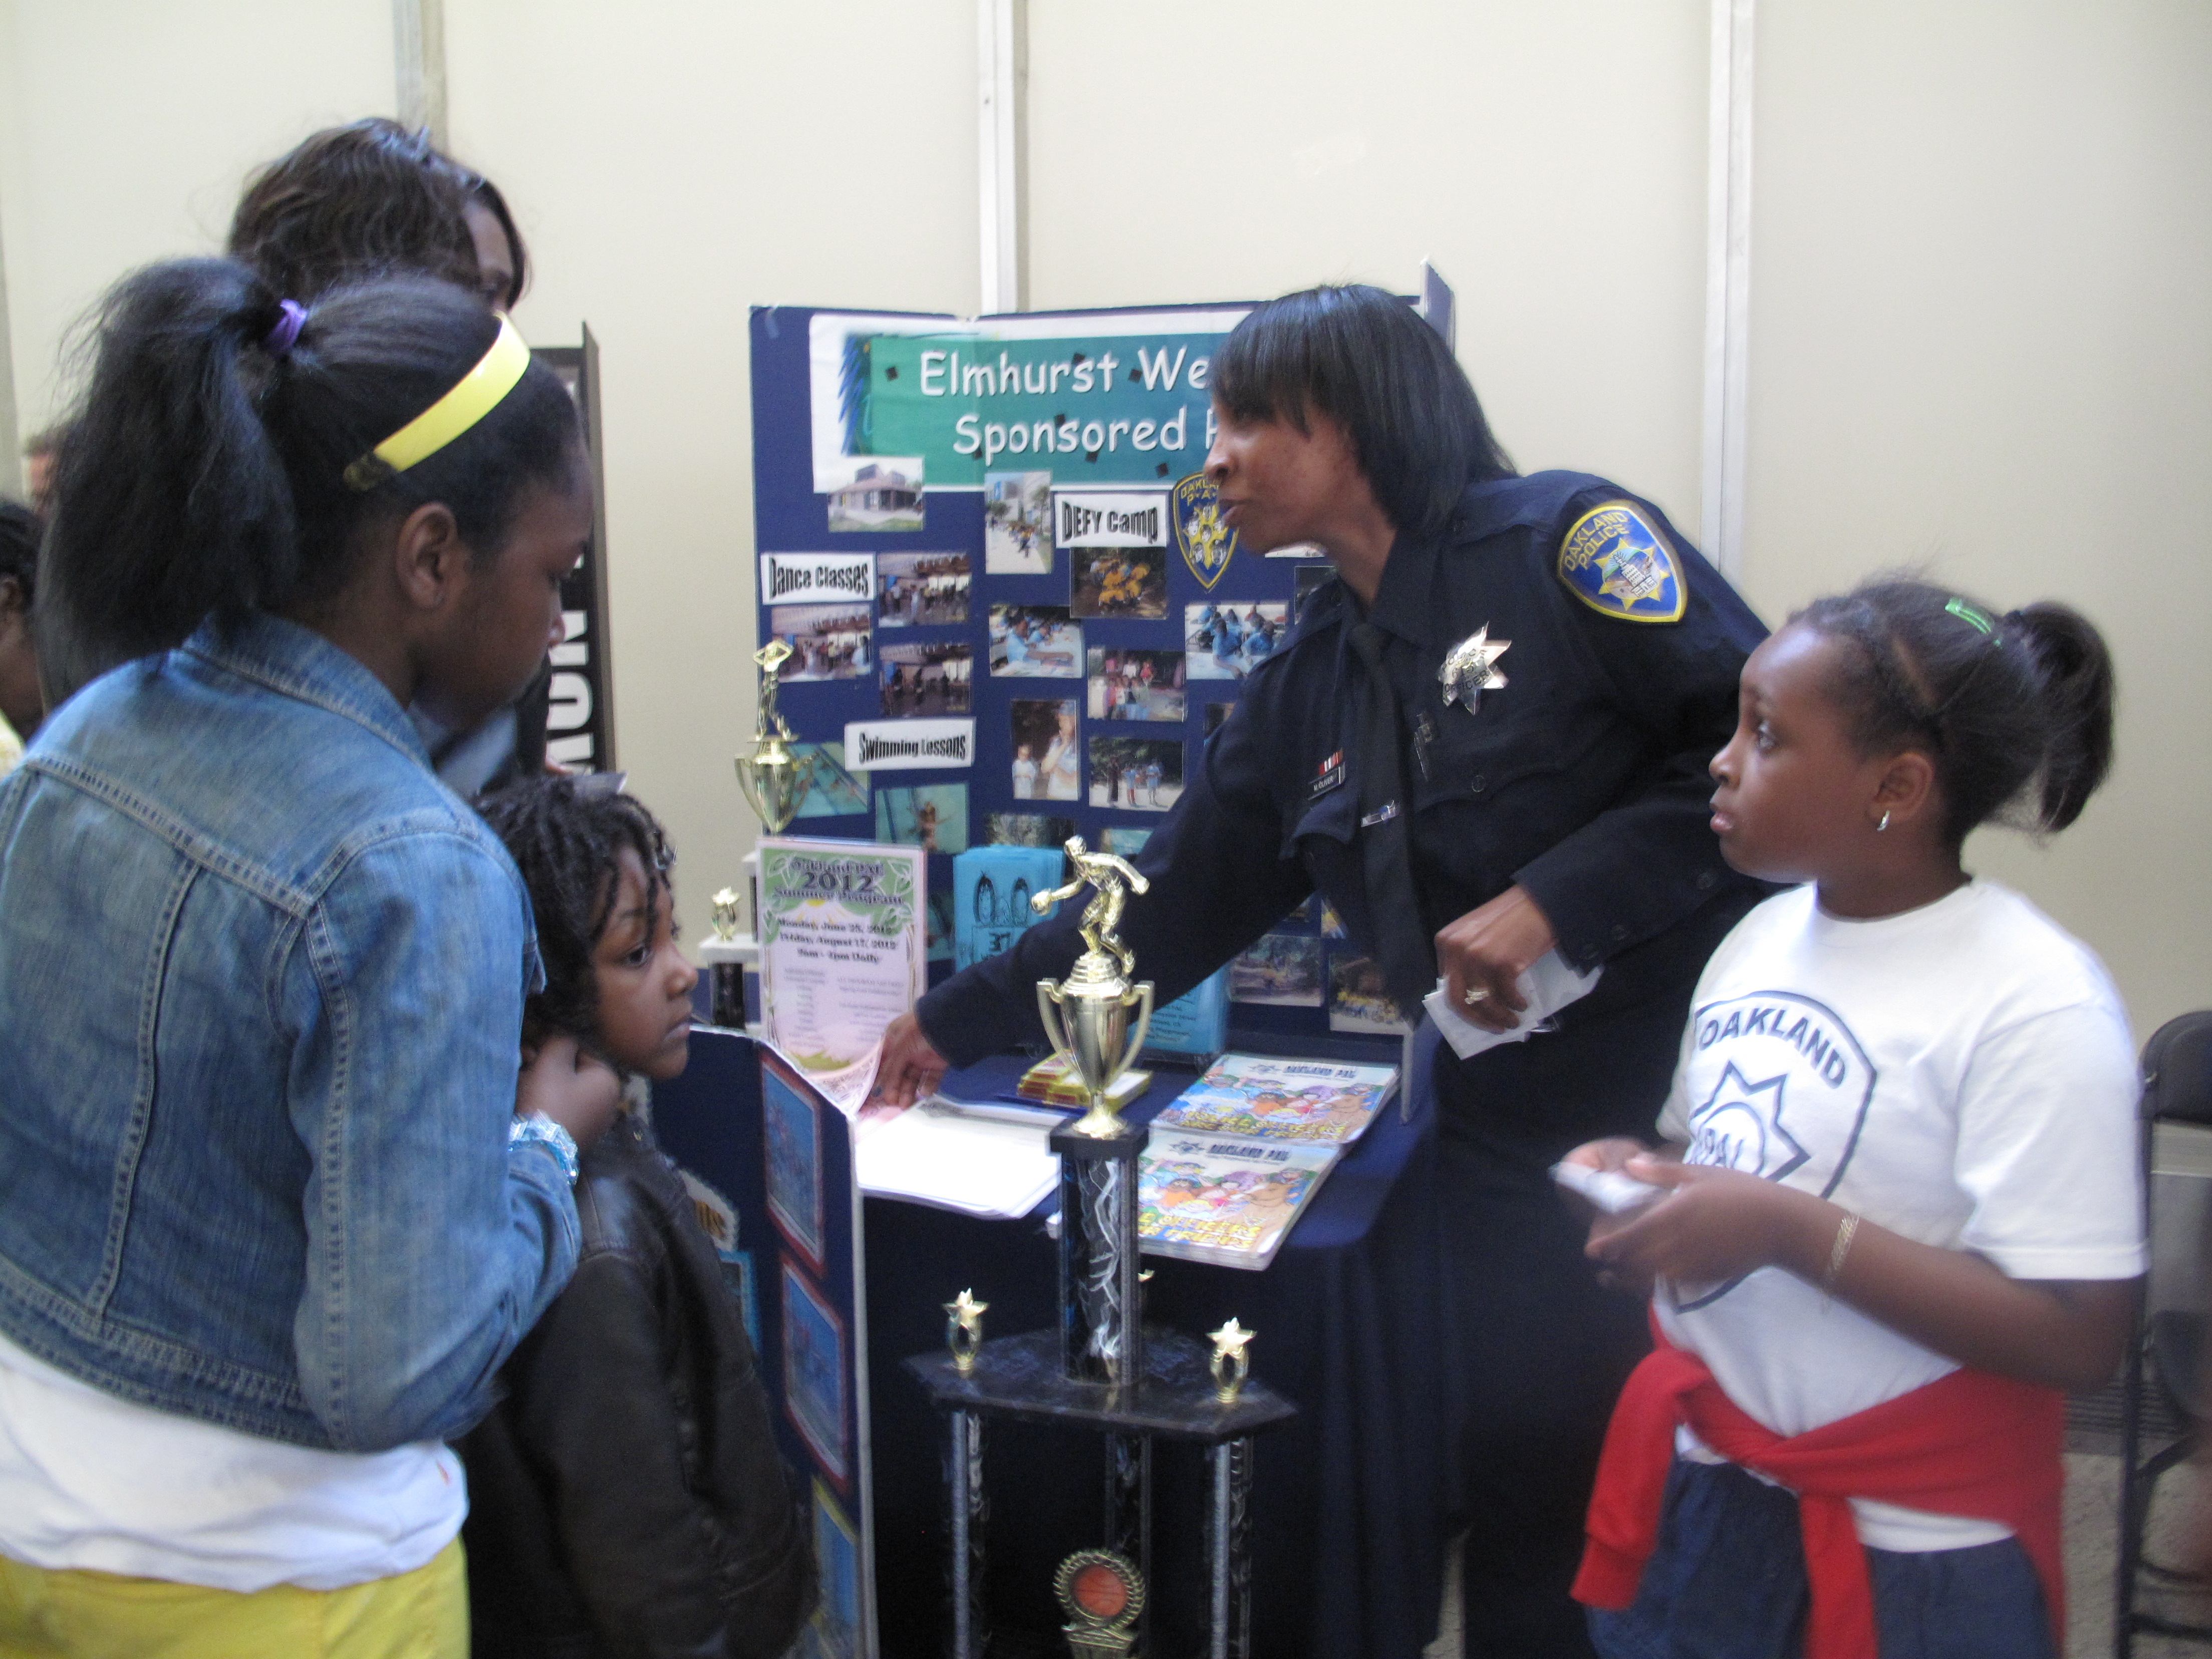 Caption: OPD officers engage with local community members during their annual open house, Credit: Kyung Jin Lee